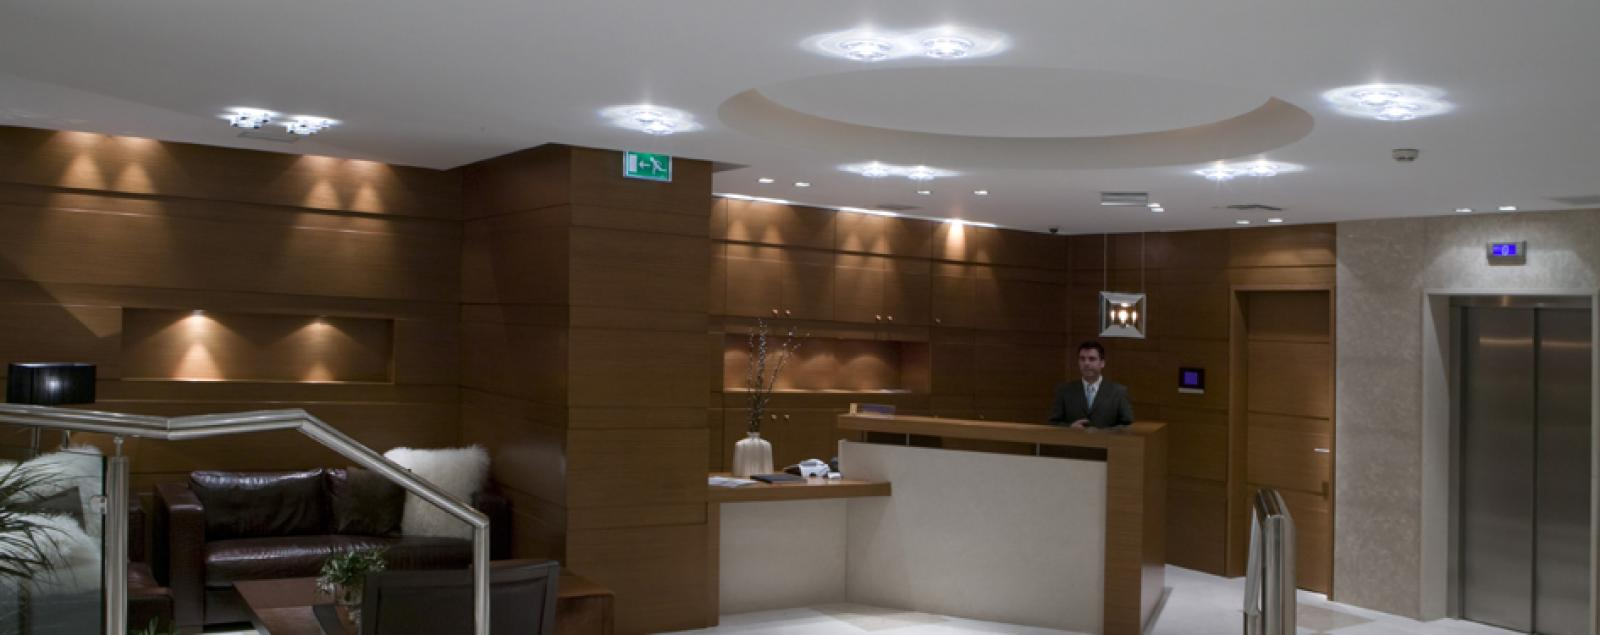 Lodge Foyer Lighting : Hotel foyer lighting lobby lamps fabbian